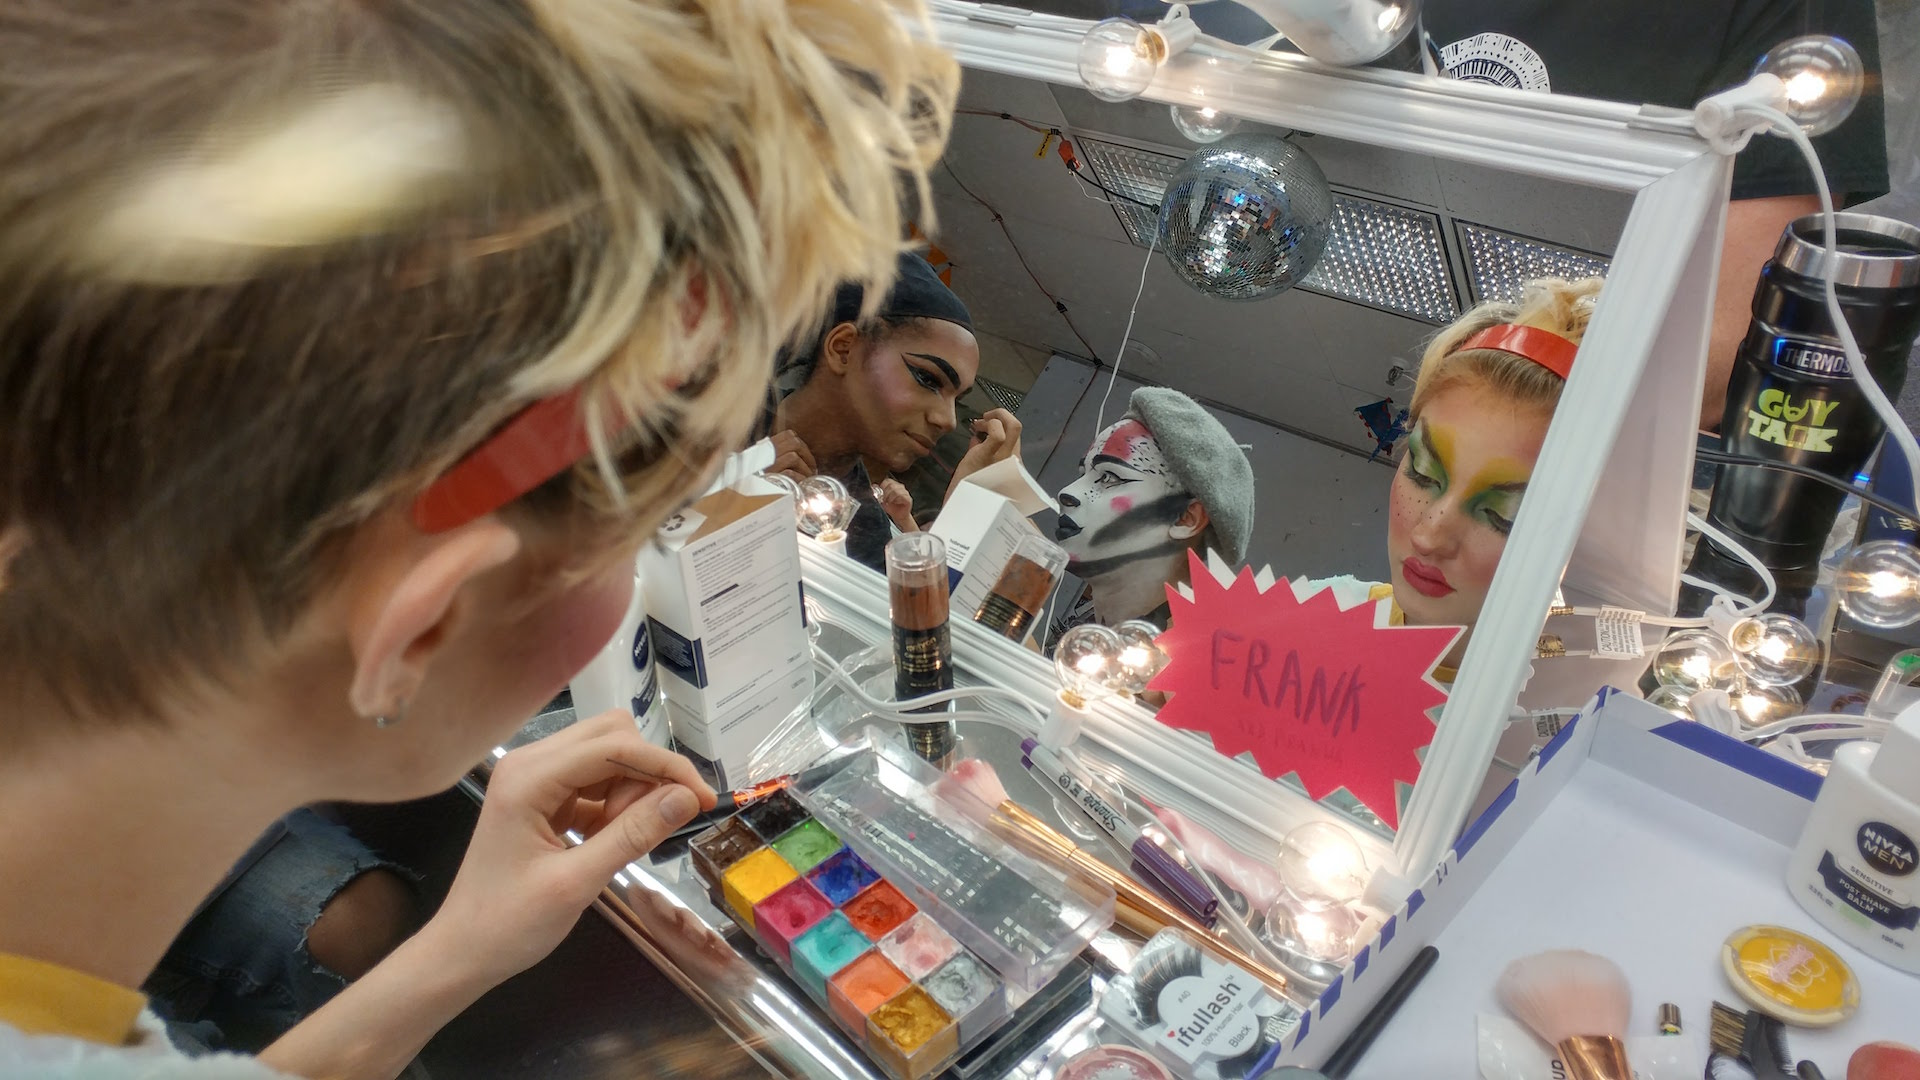 The performers are seen in a vanity mirror applying colorful and extravagant makeup looks.